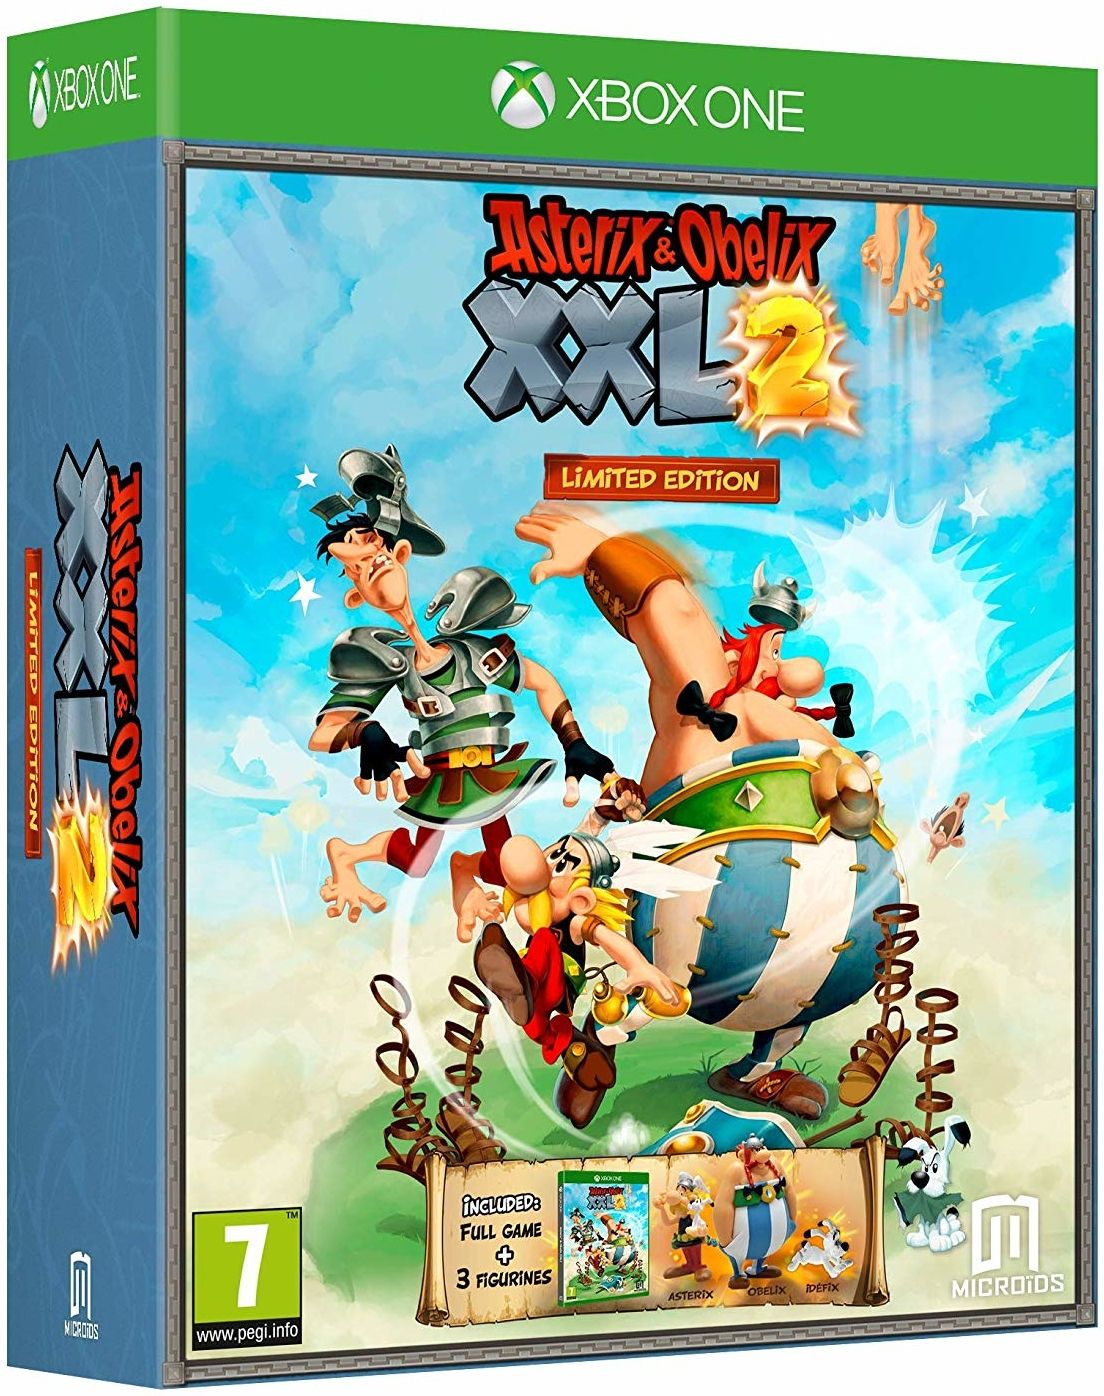 Asterix & Obelix XXL2 - Limited Edition (Xbox One) - 2